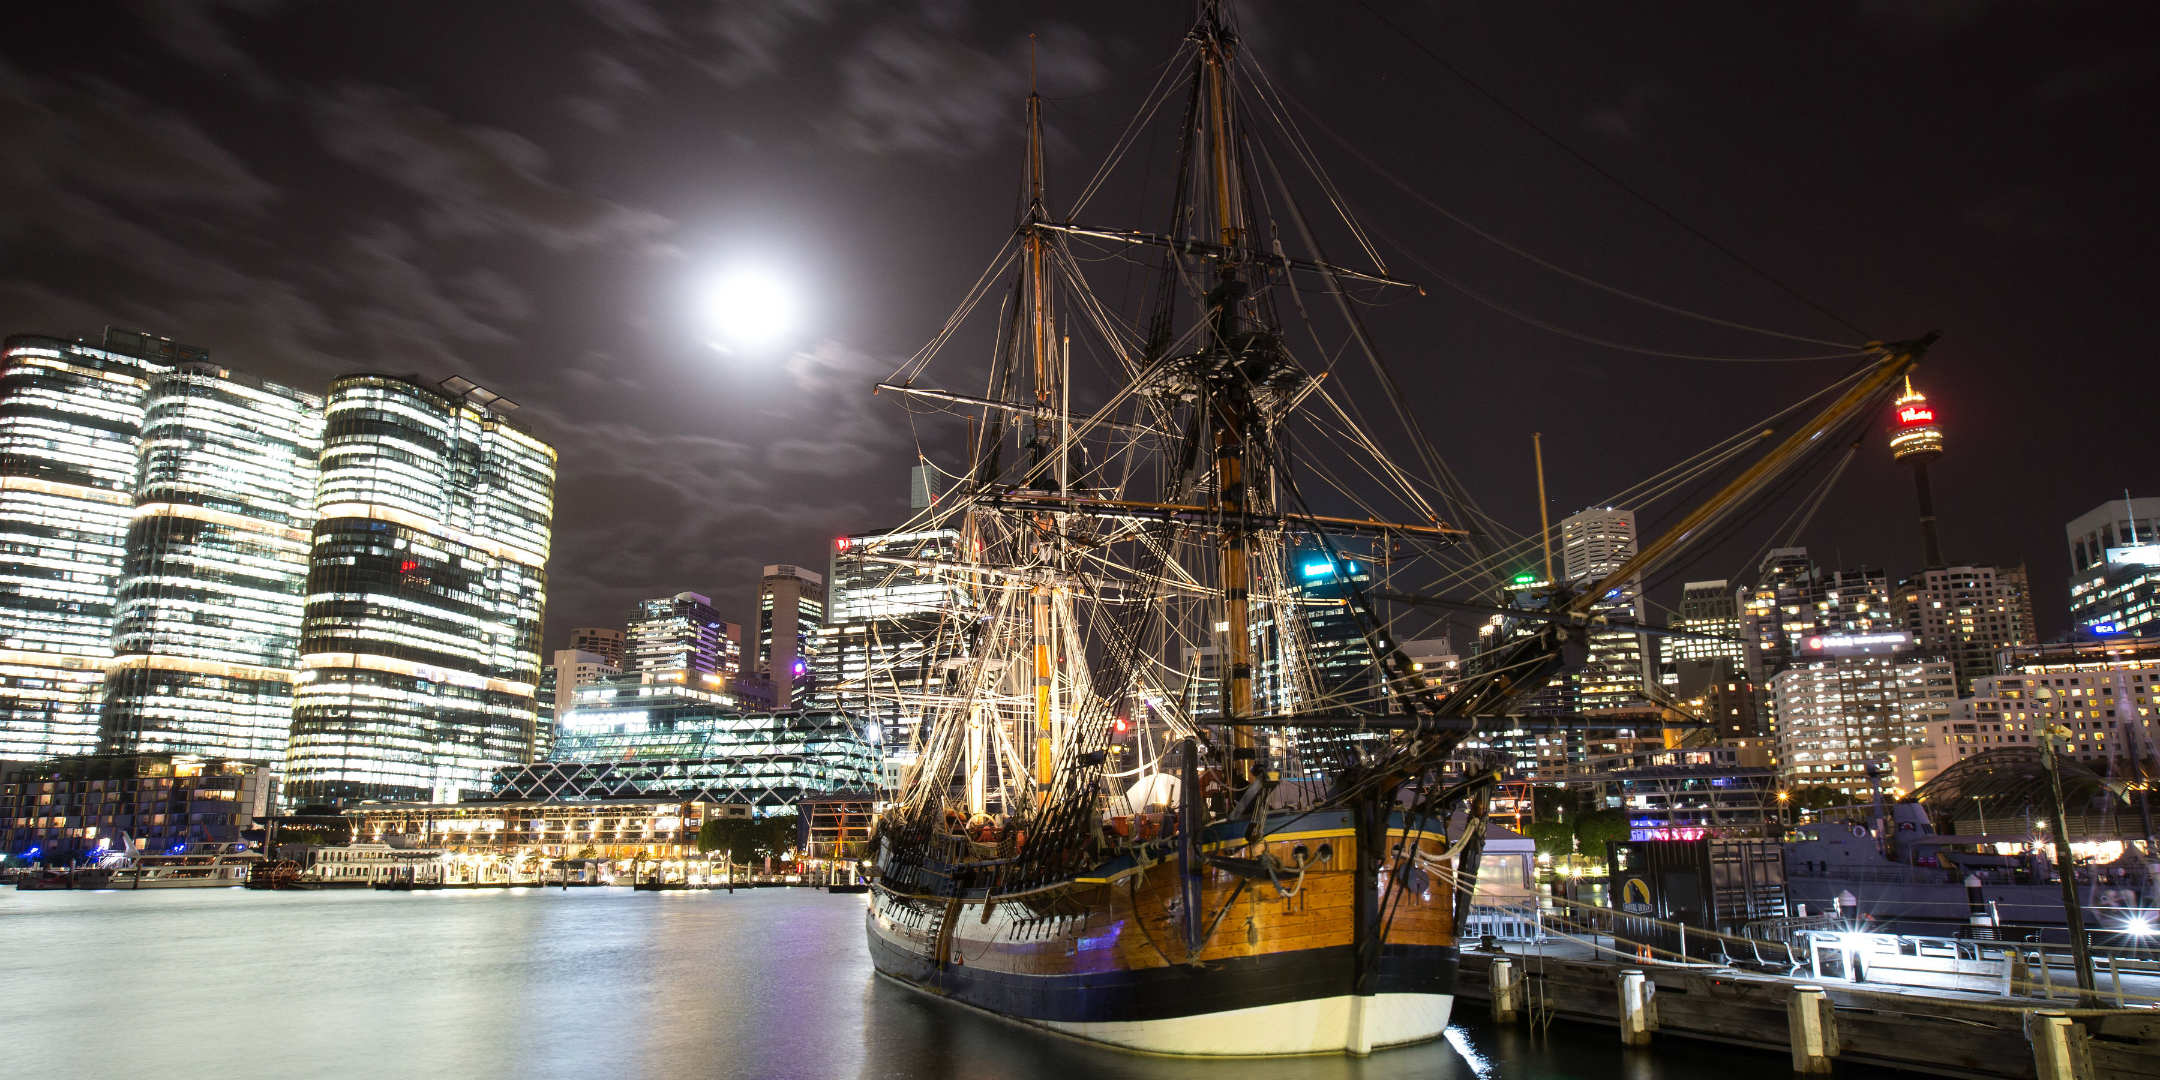 HMB Endeavour at night